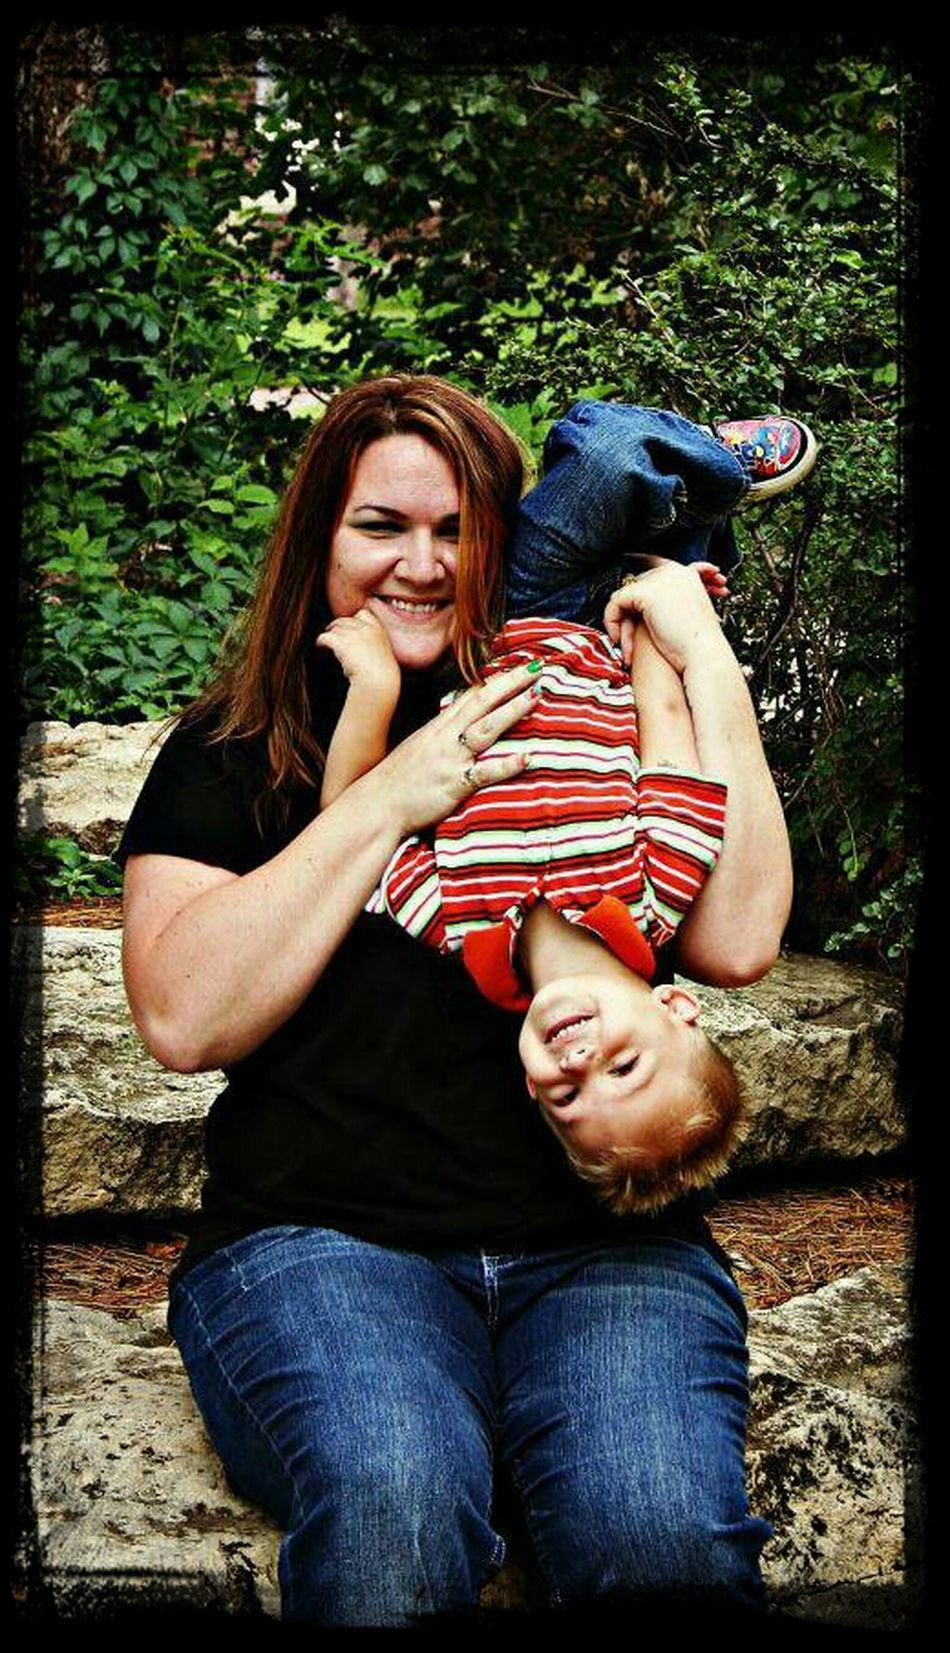 Mommyandson Son Love Dreamcometrue